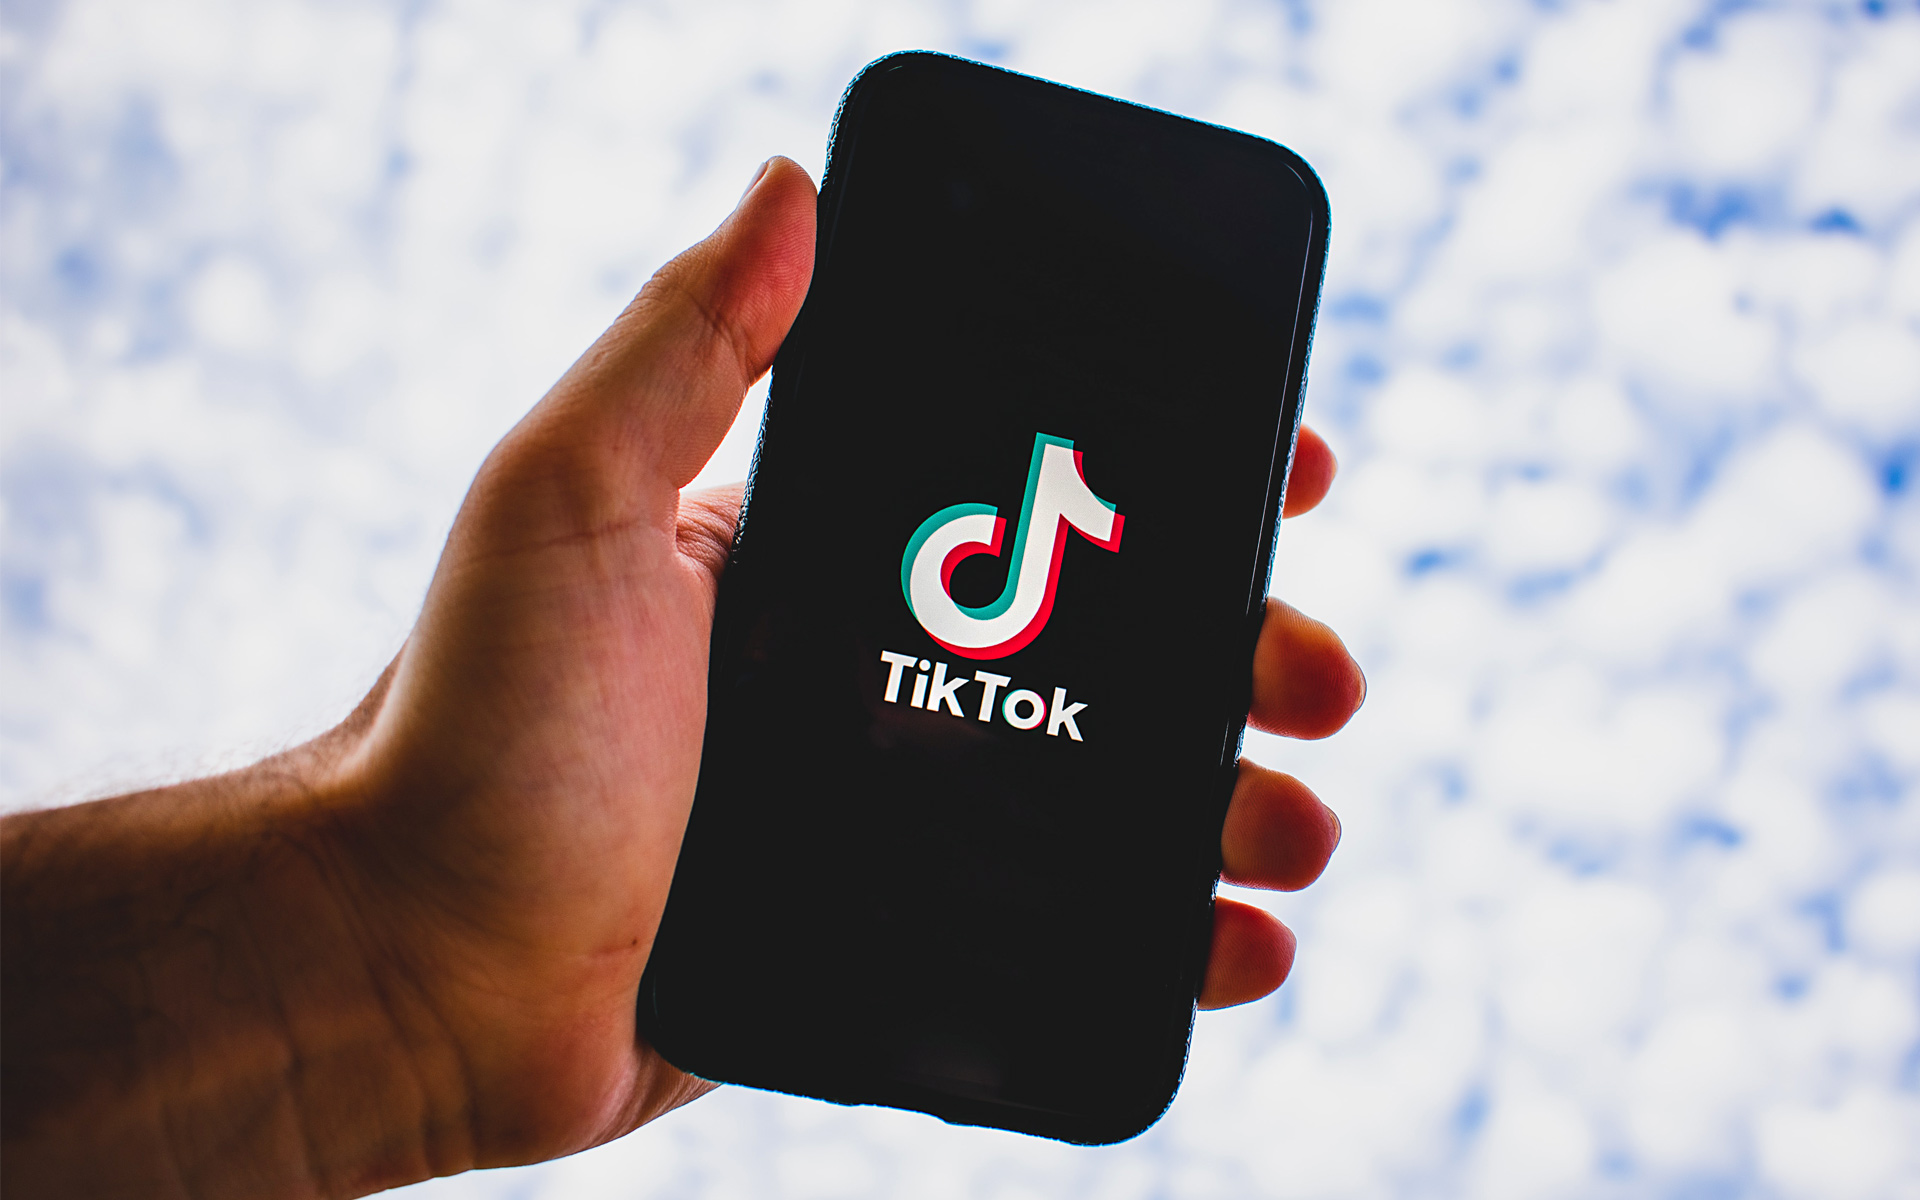 A hand holds a cell phone, featuring the TikTok logo on the screen, towards the clouded sky.